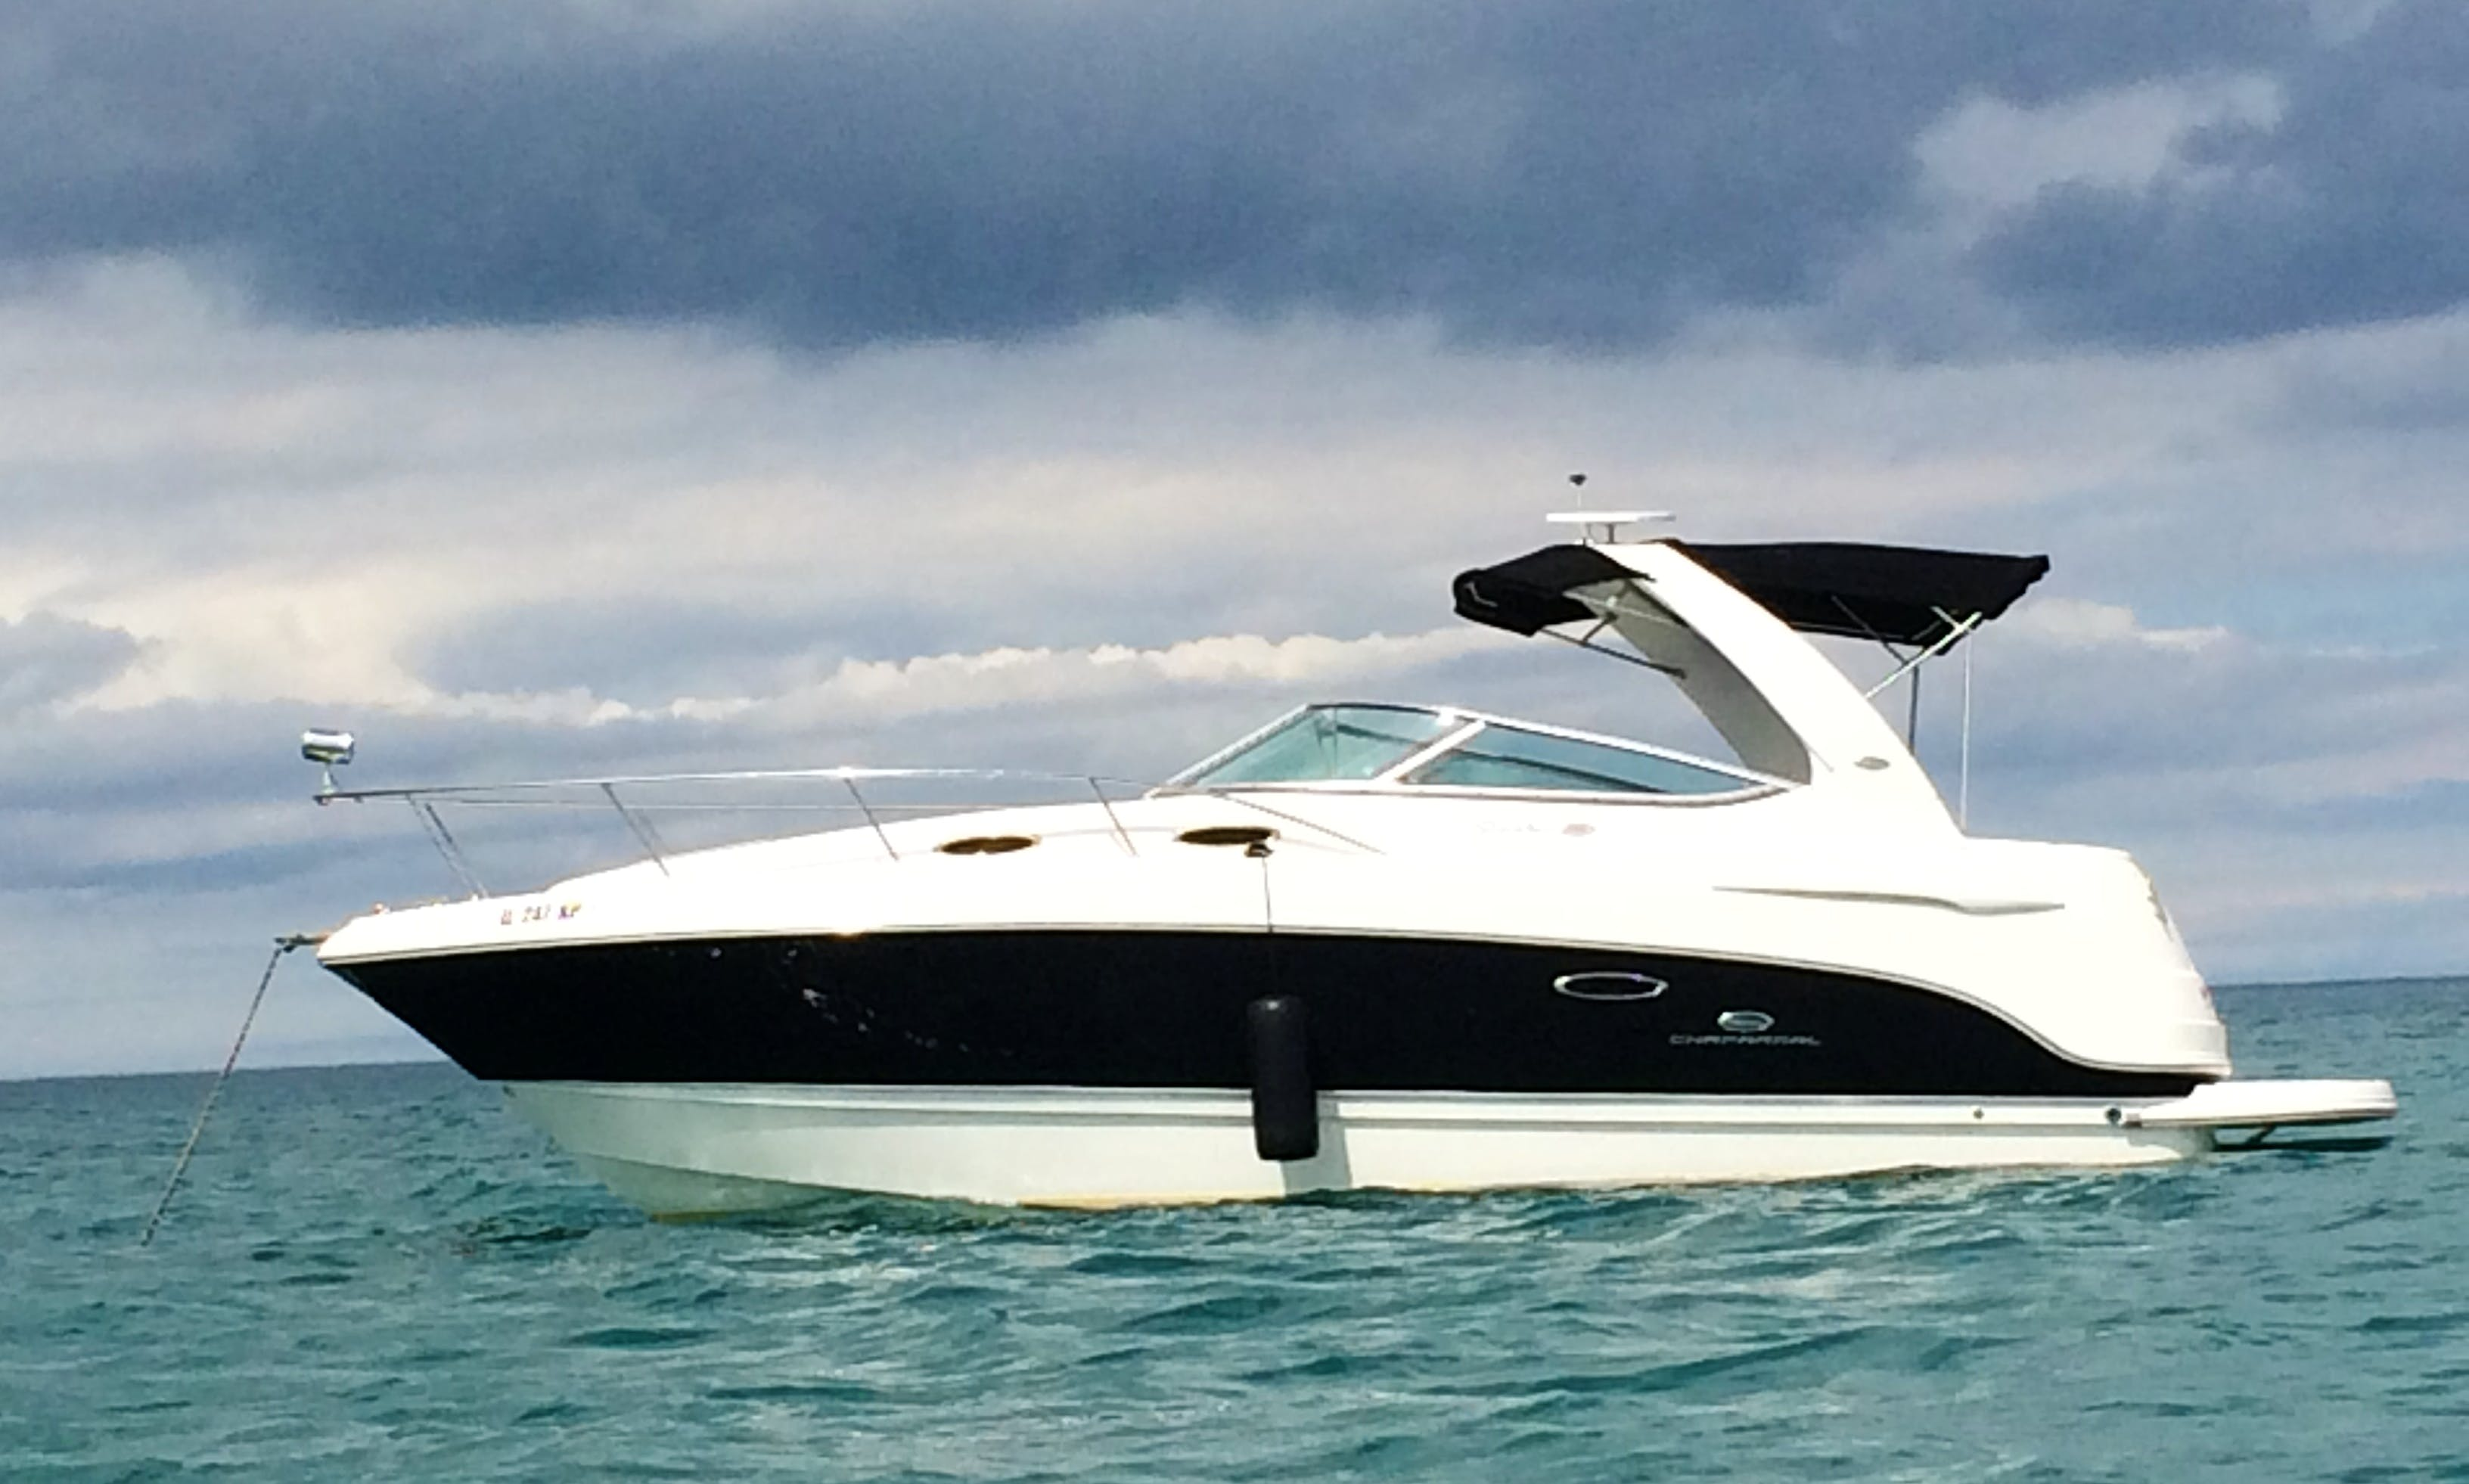 31' Captained Yacht Charter in Chicago Aboard Bellanzi!